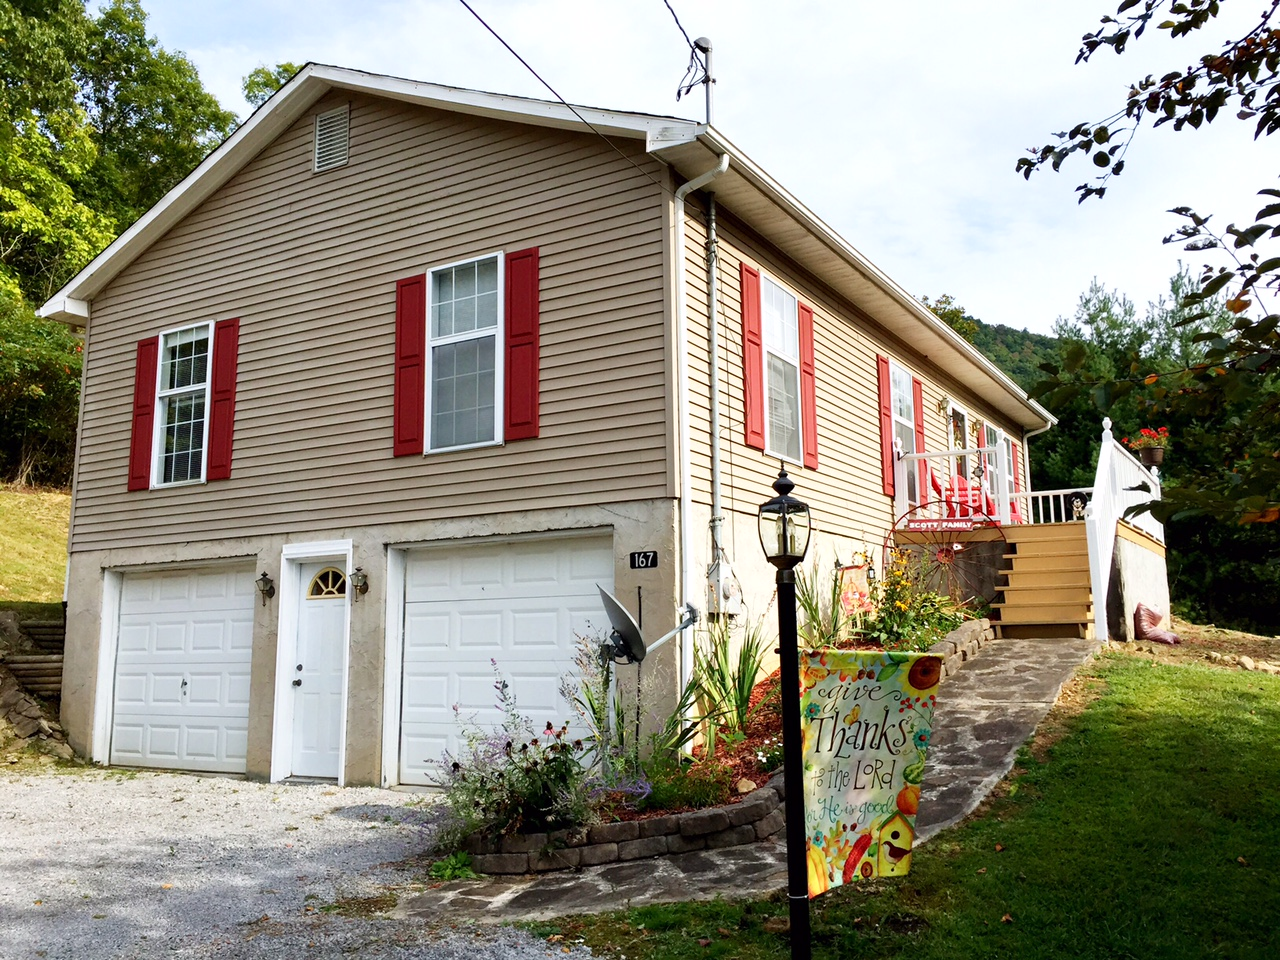 167 Lighthouse Drive, Duffield, Virginia 24244